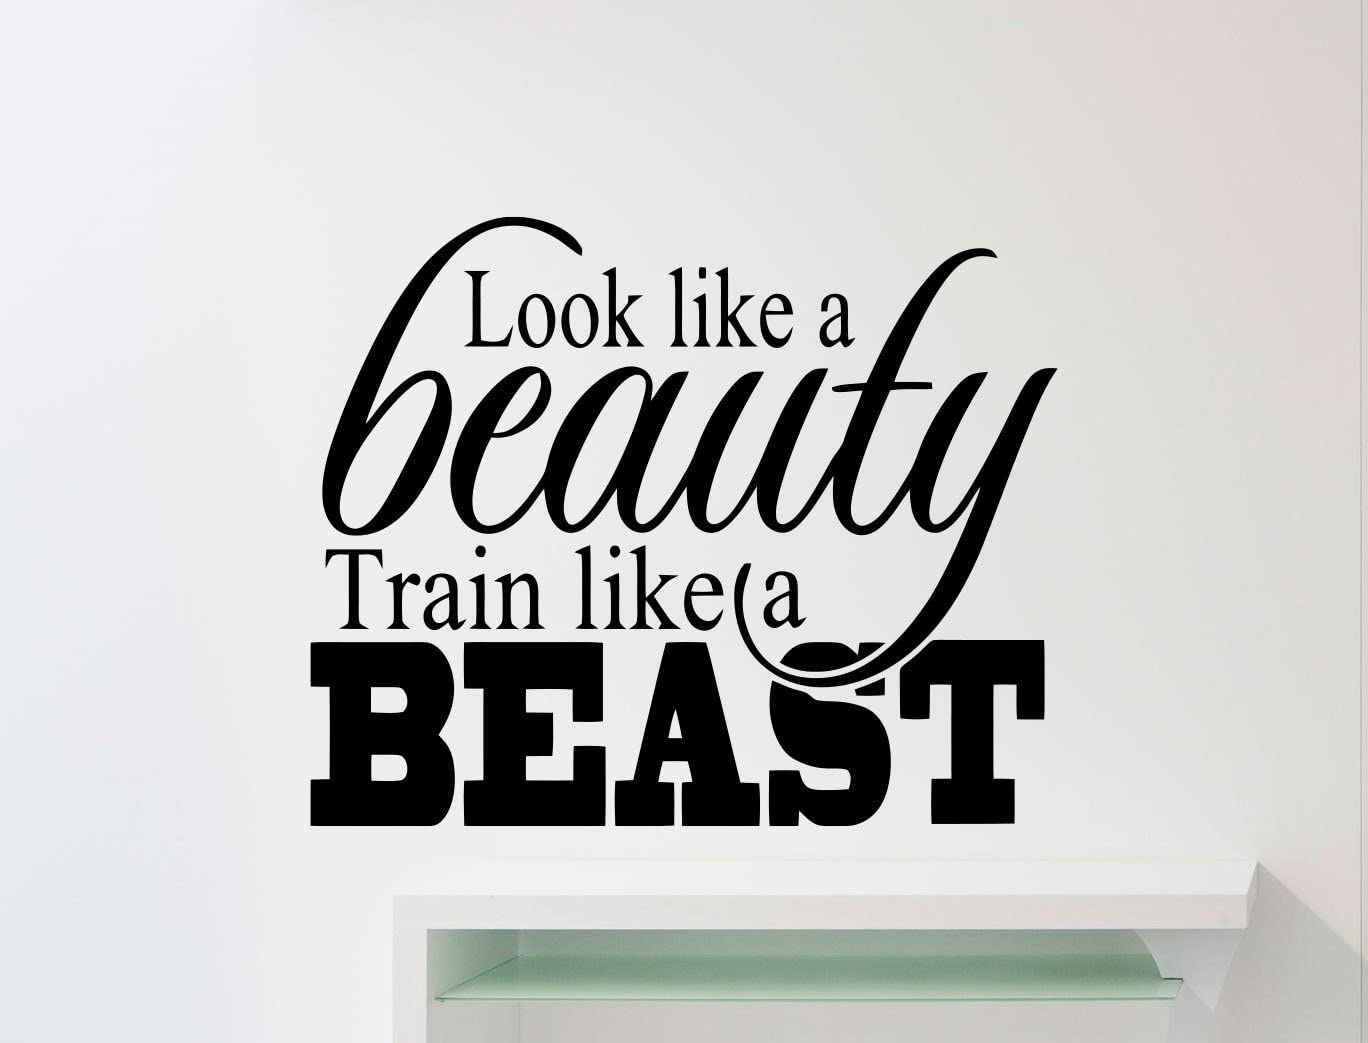 Gym Wall Decal Look Like A Beauty Train Like A Beast Motivational Fitness Vinyl Sticker Home Sport Gym Interior Art Decor Quote Inspirational Words Lettering Mural Fit Workout Vinyl Sticker (139ex)